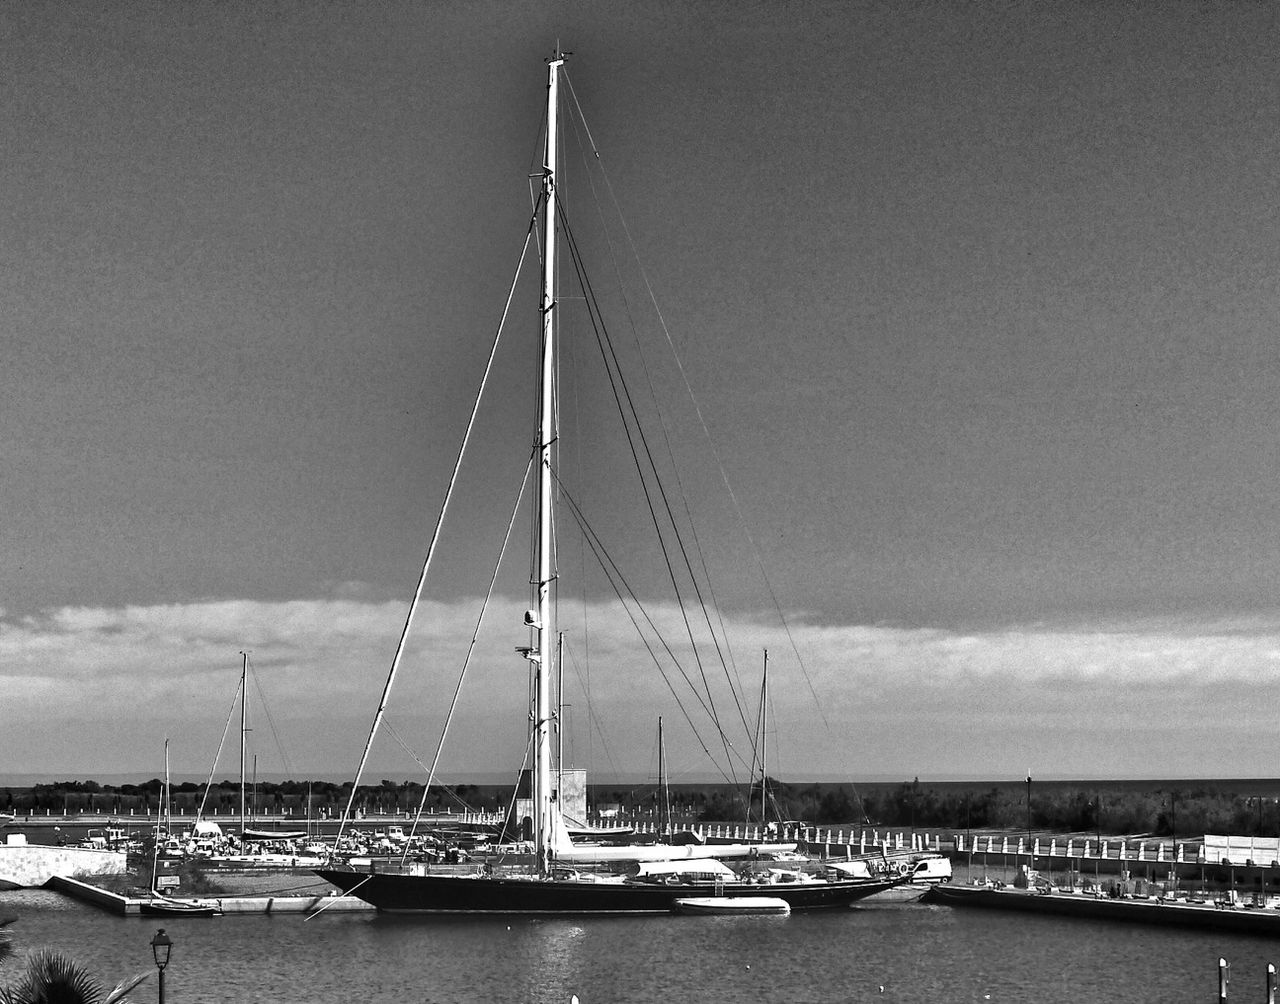 Welcome A Board Marinagri Italy Black & White